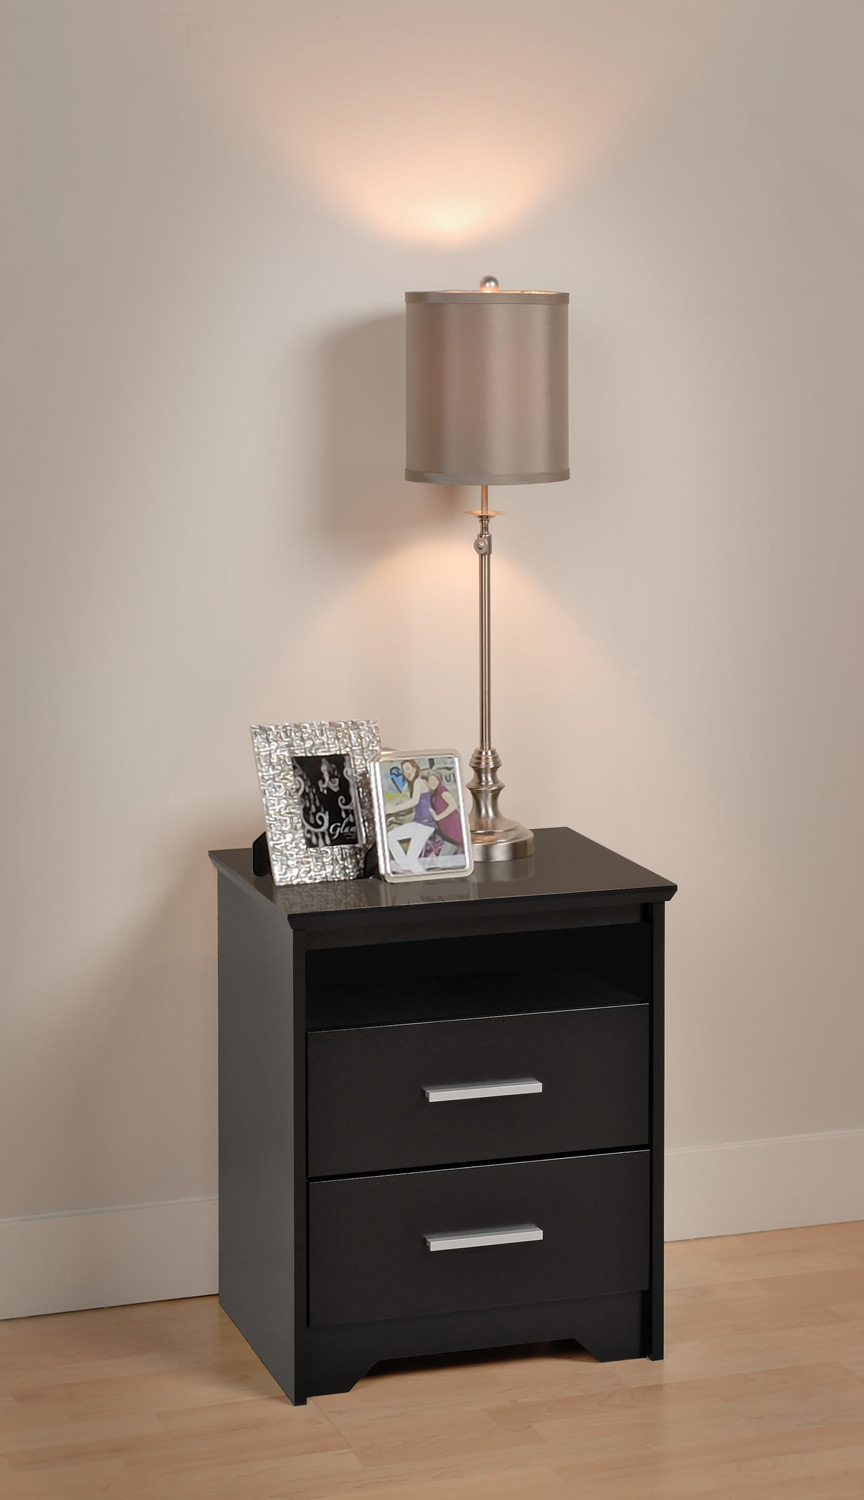 Prepac Coal Harbor 2 Drawer Tall Night Stand with Open Shelf - Black